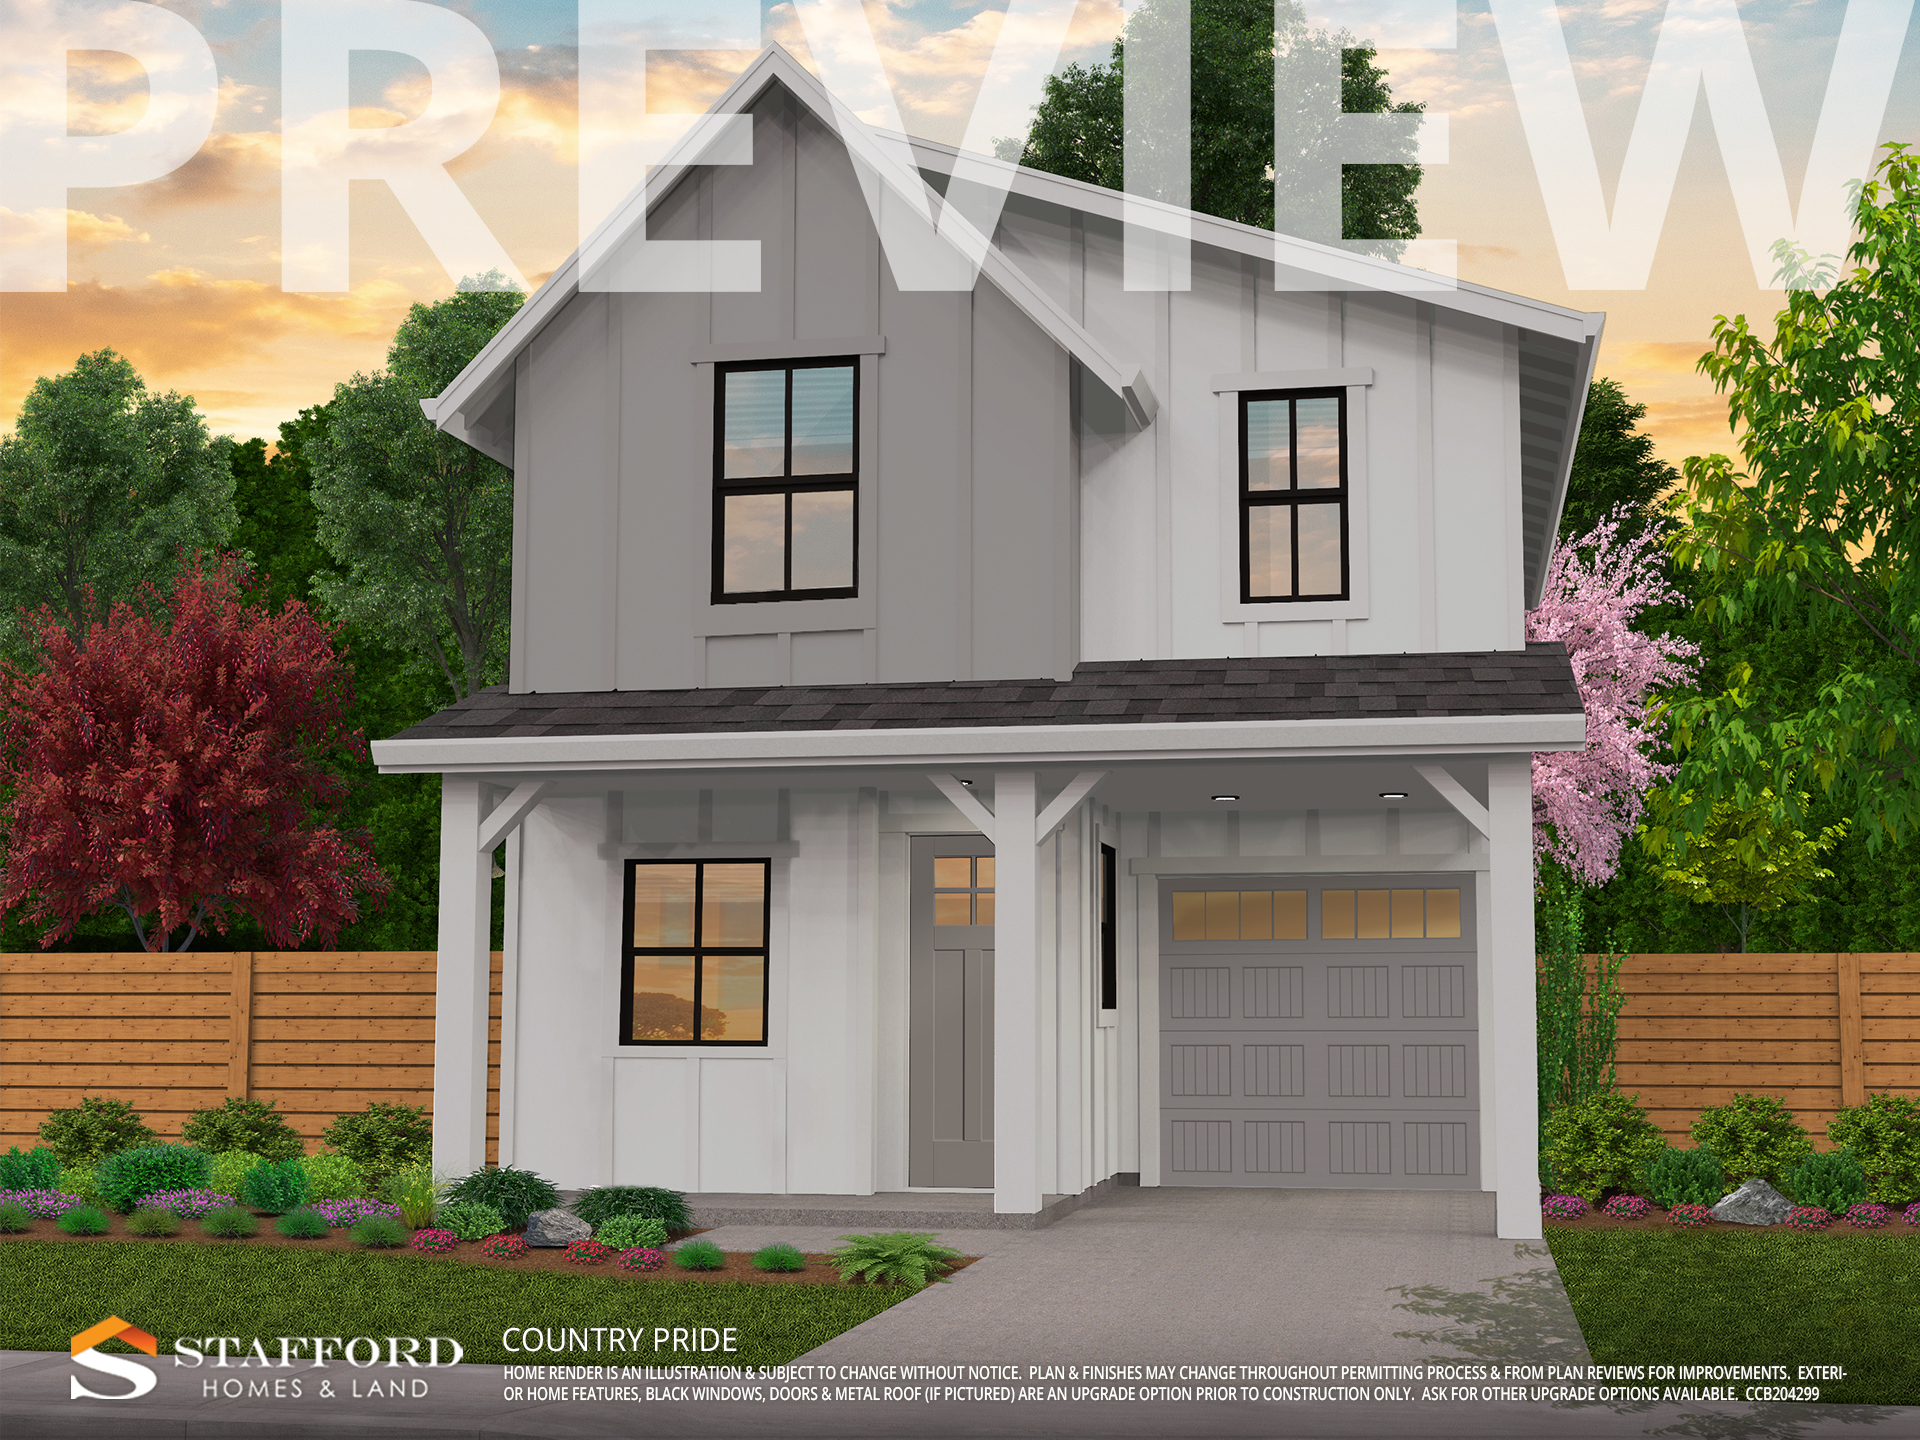 Render preview of Country Pride home in Pringle Creek Salem color white and gray